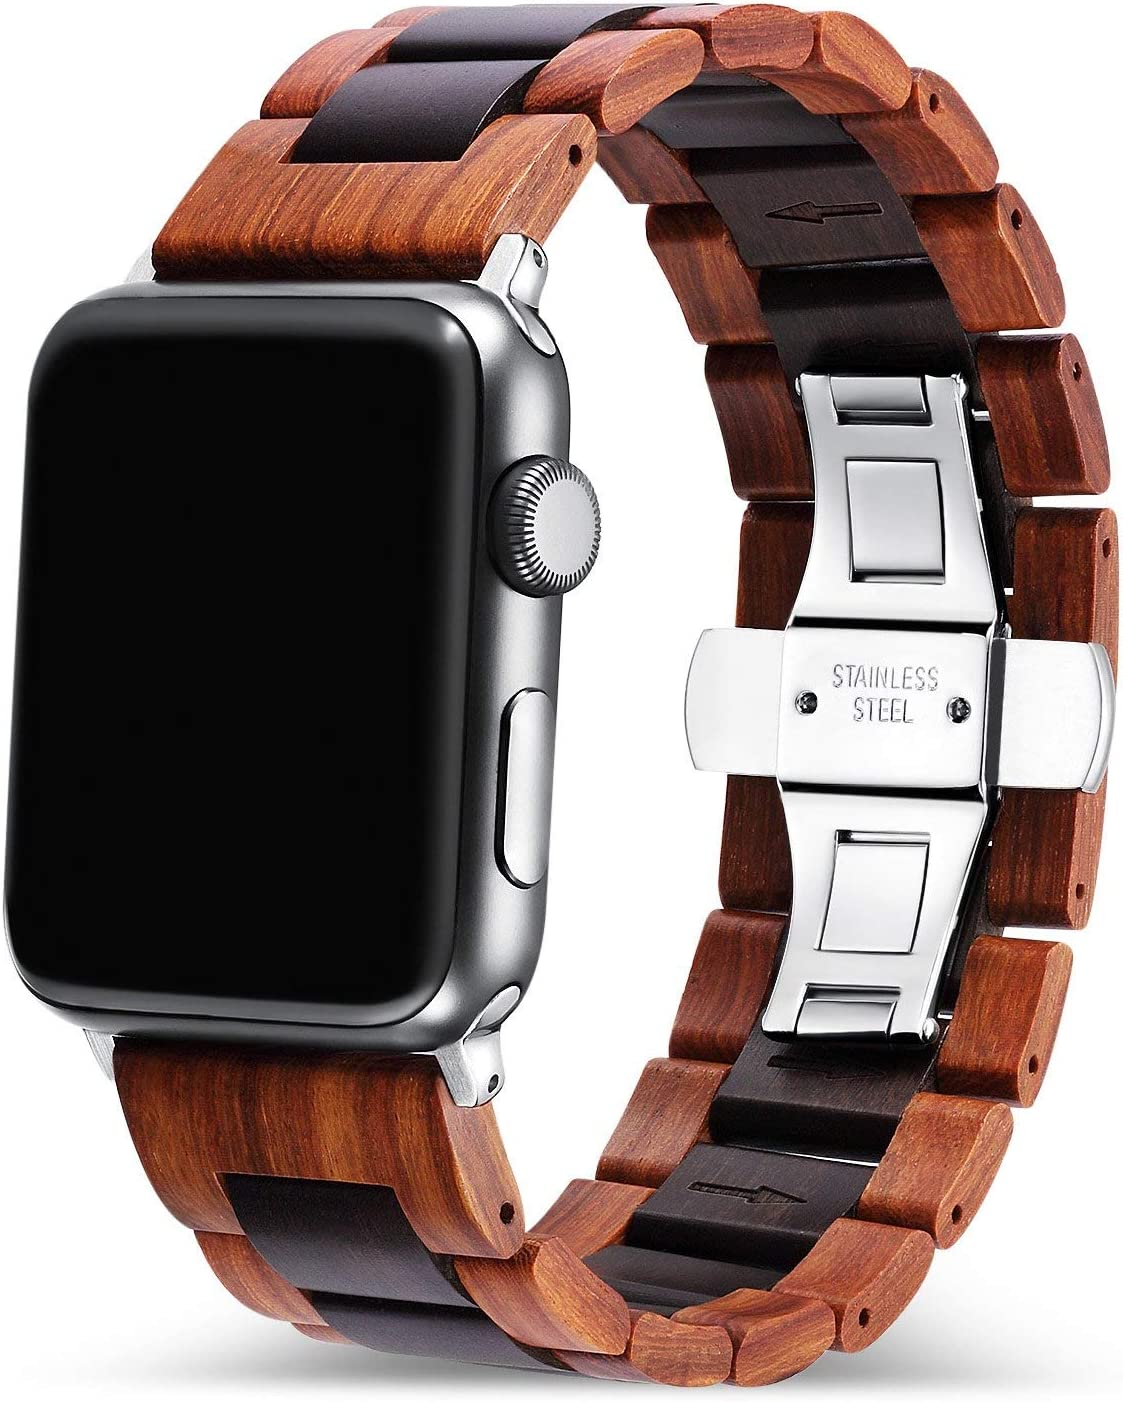 Angie Wood Creations - Red Sandalwood and Ebony Band Compatible with Apple Watch 38mm/40mm